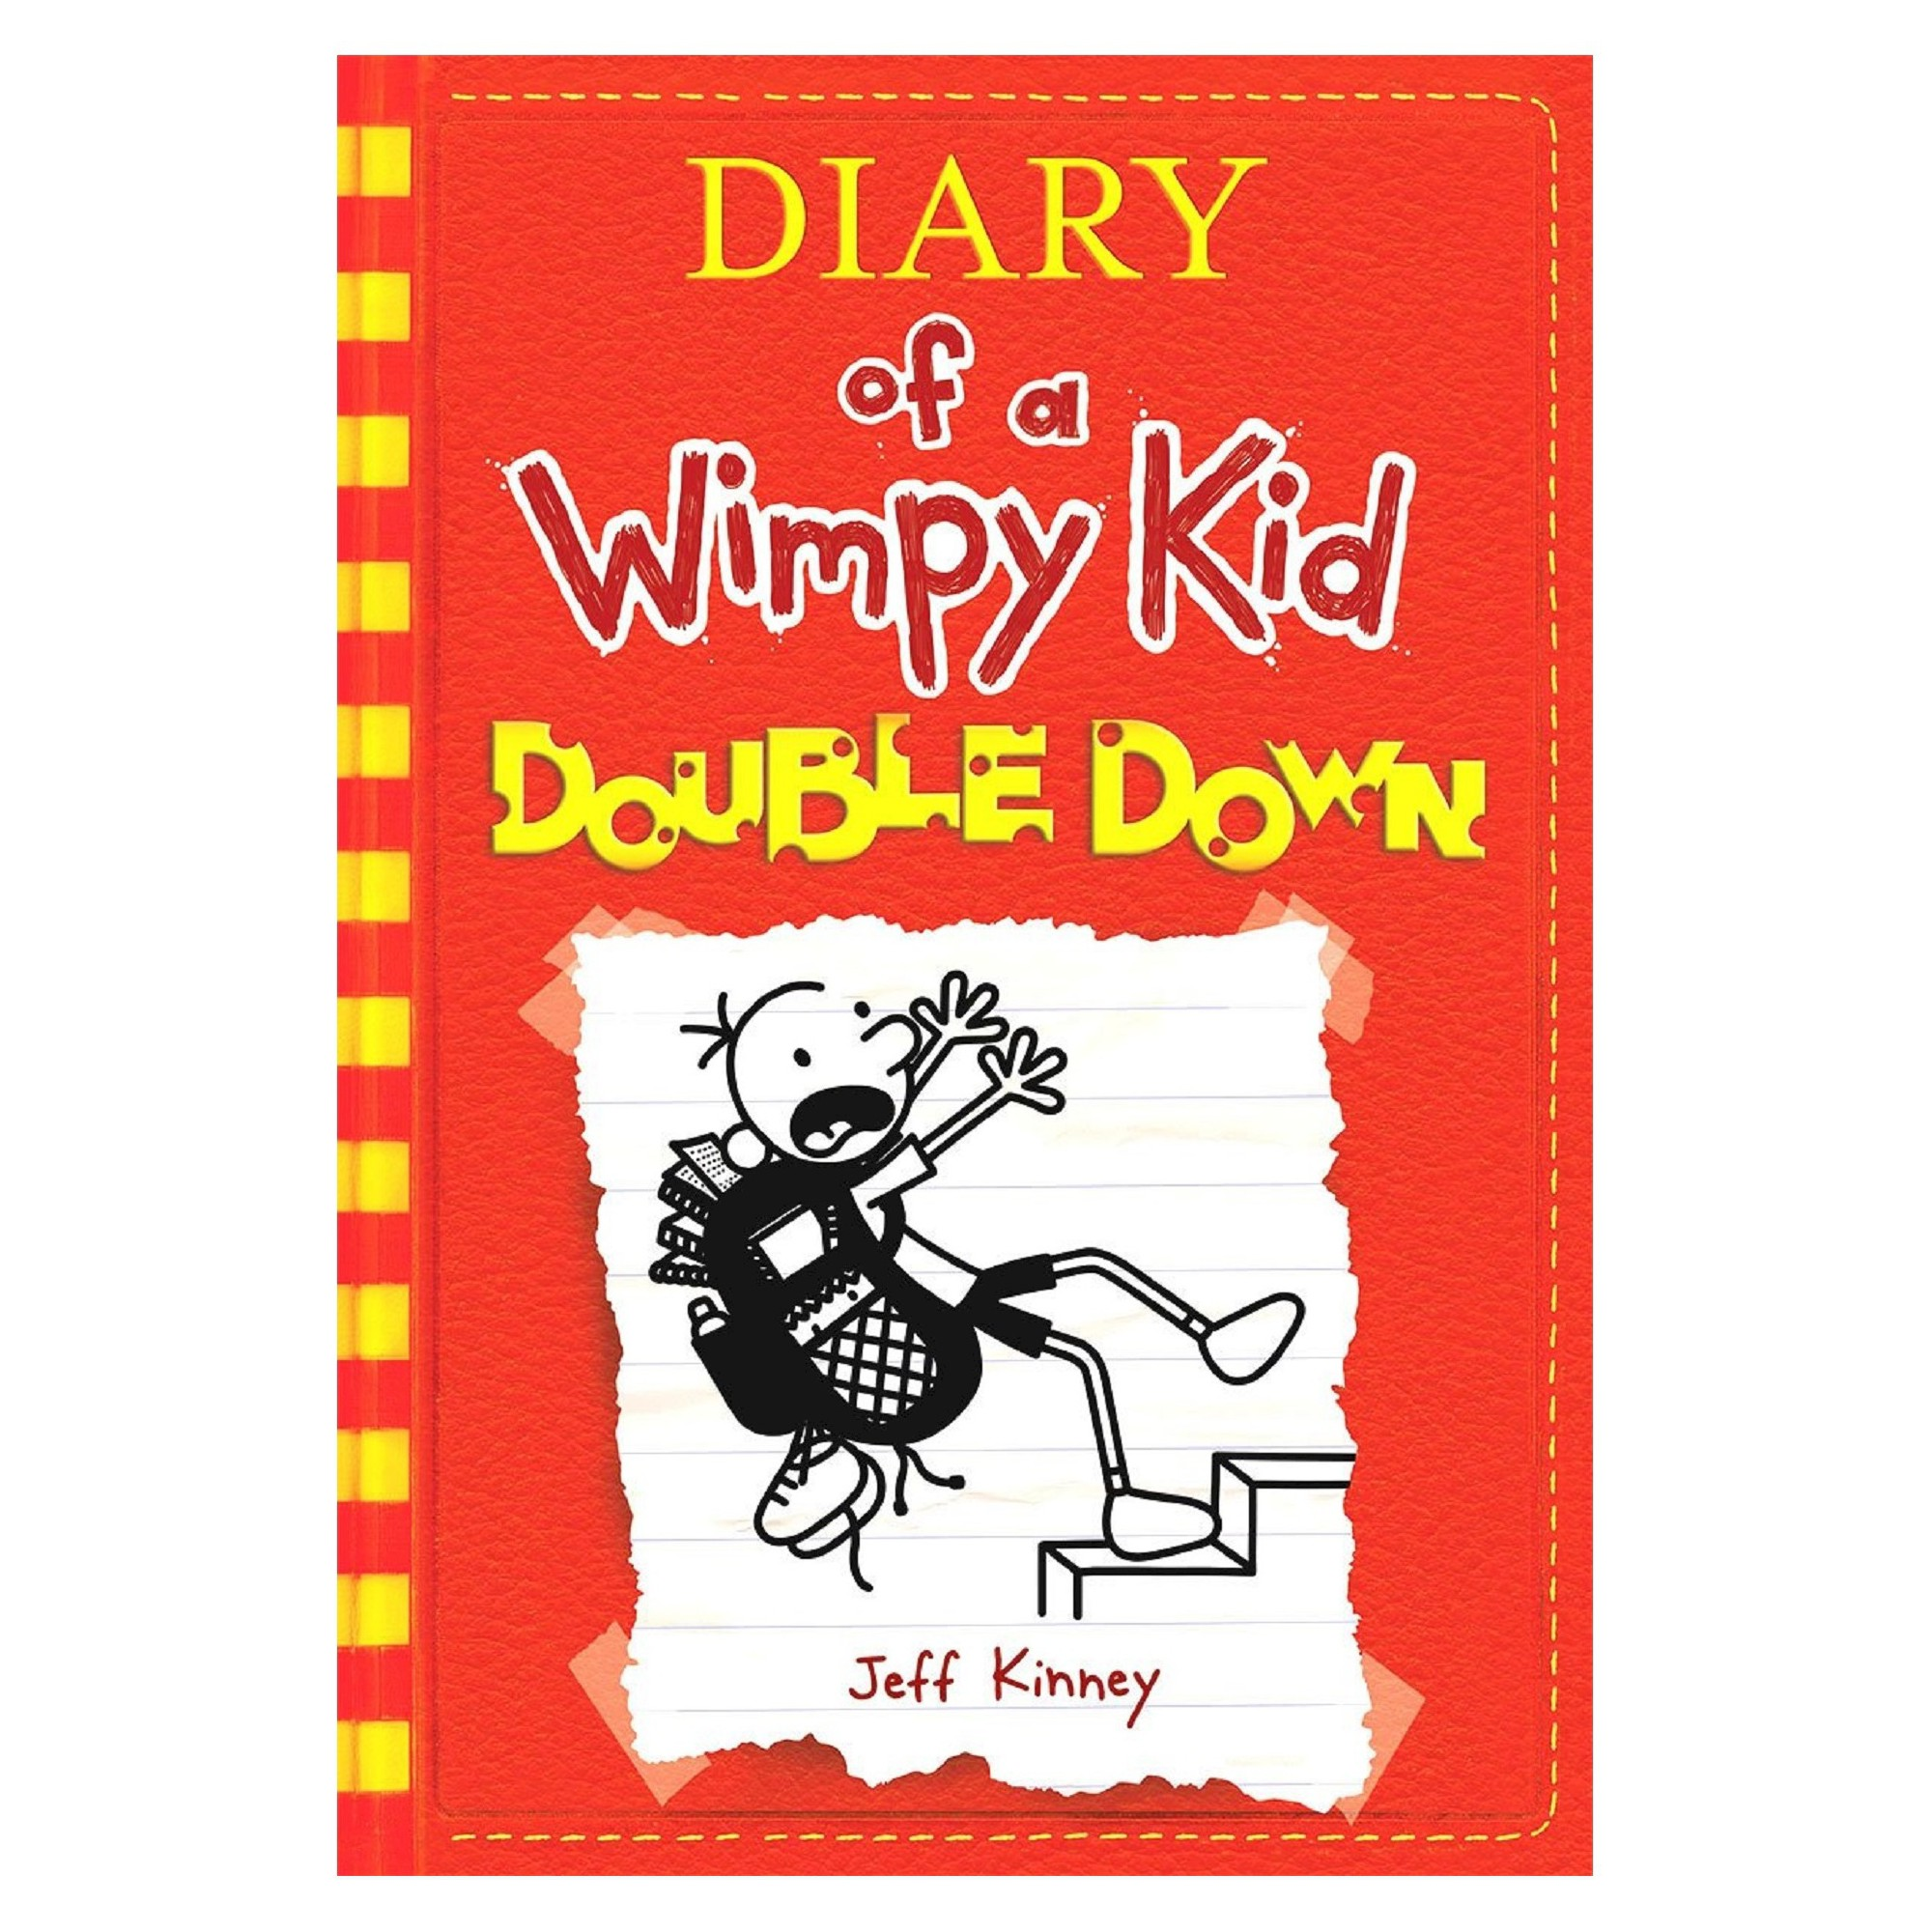 Double down diary of a wimpy kid series 11 target exclusive double down diary of a wimpy kid series 11 target exclusive poster solutioingenieria Image collections